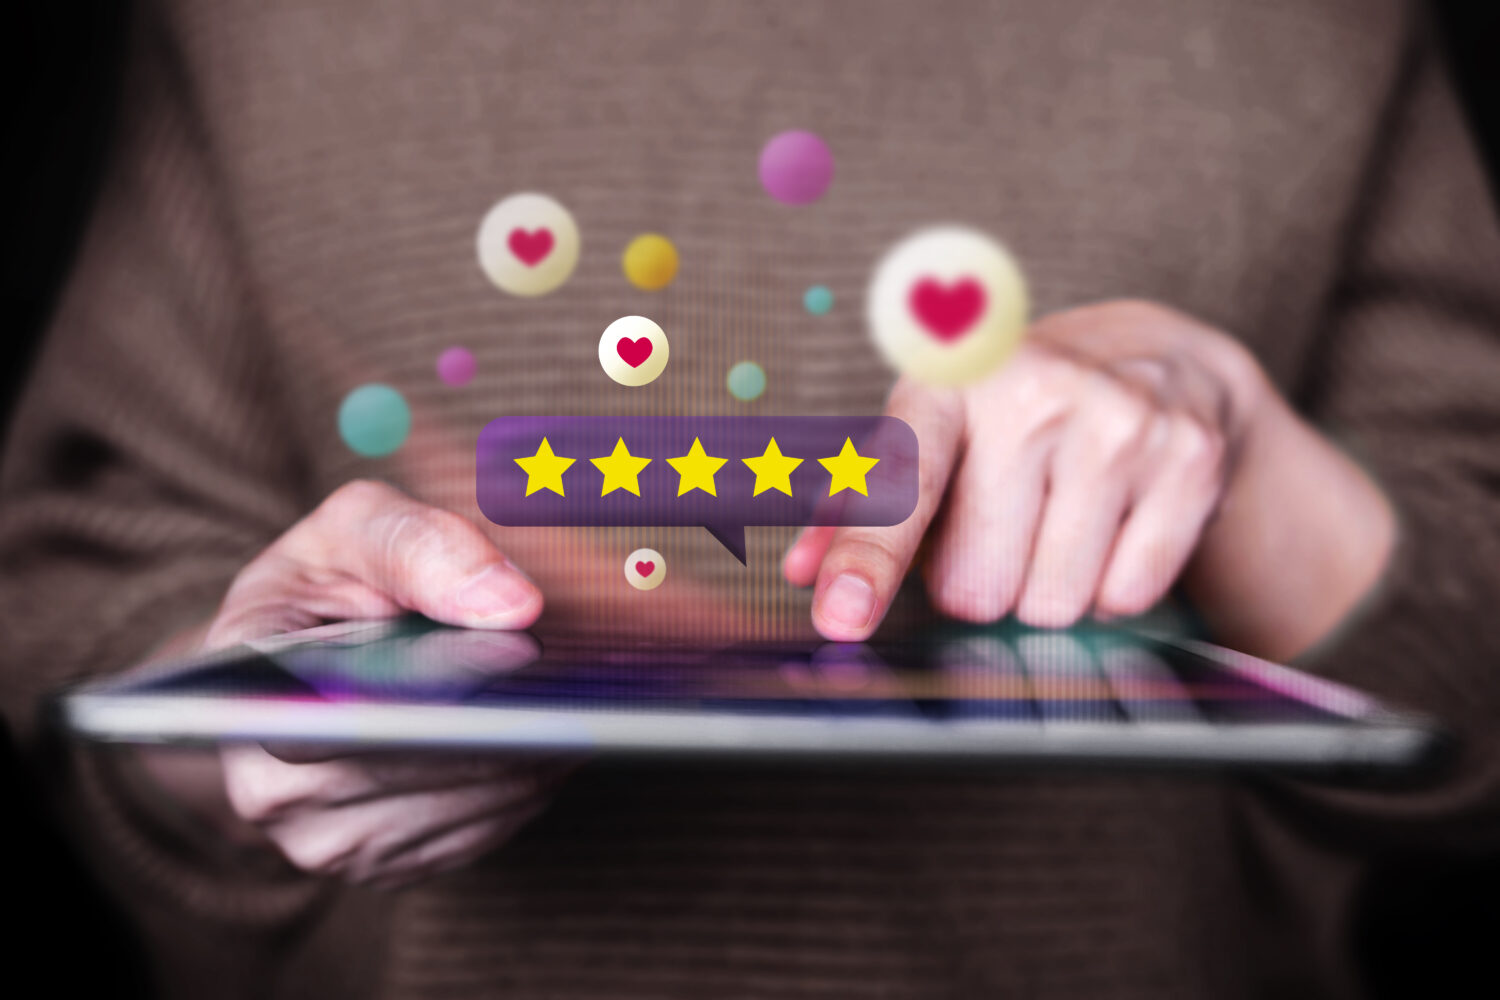 cropped image of hands using a tablet with floating star rating and hearts around